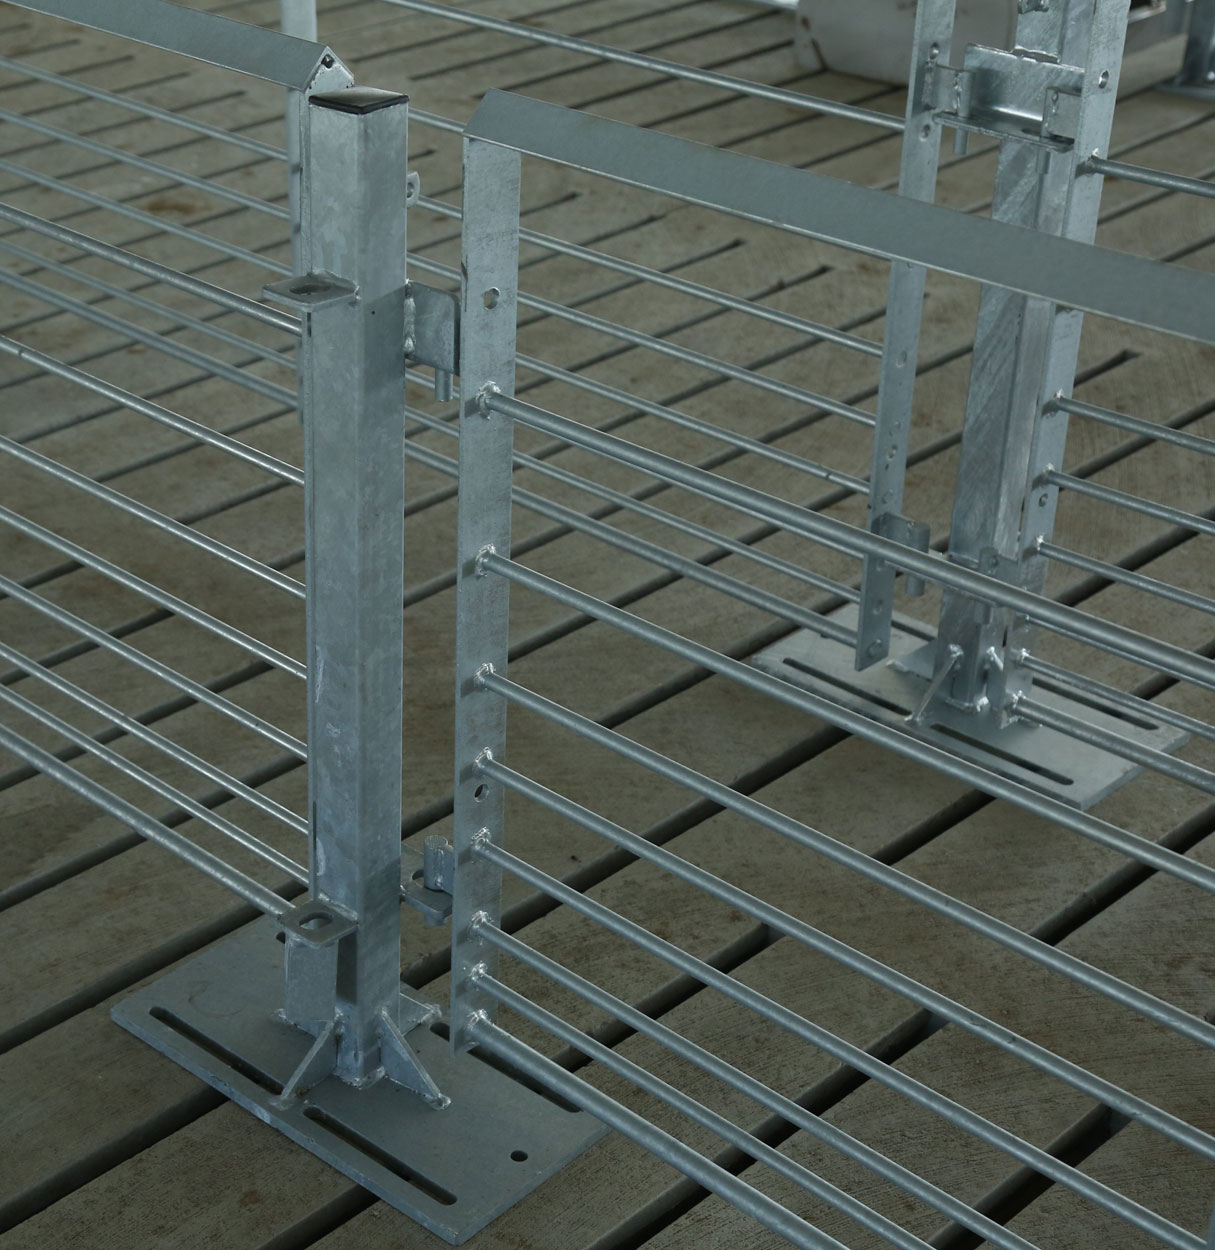 Hog Slat penning, gate posts and other installation accessories are available in a long lasting corrosion resistant galvanized finish.